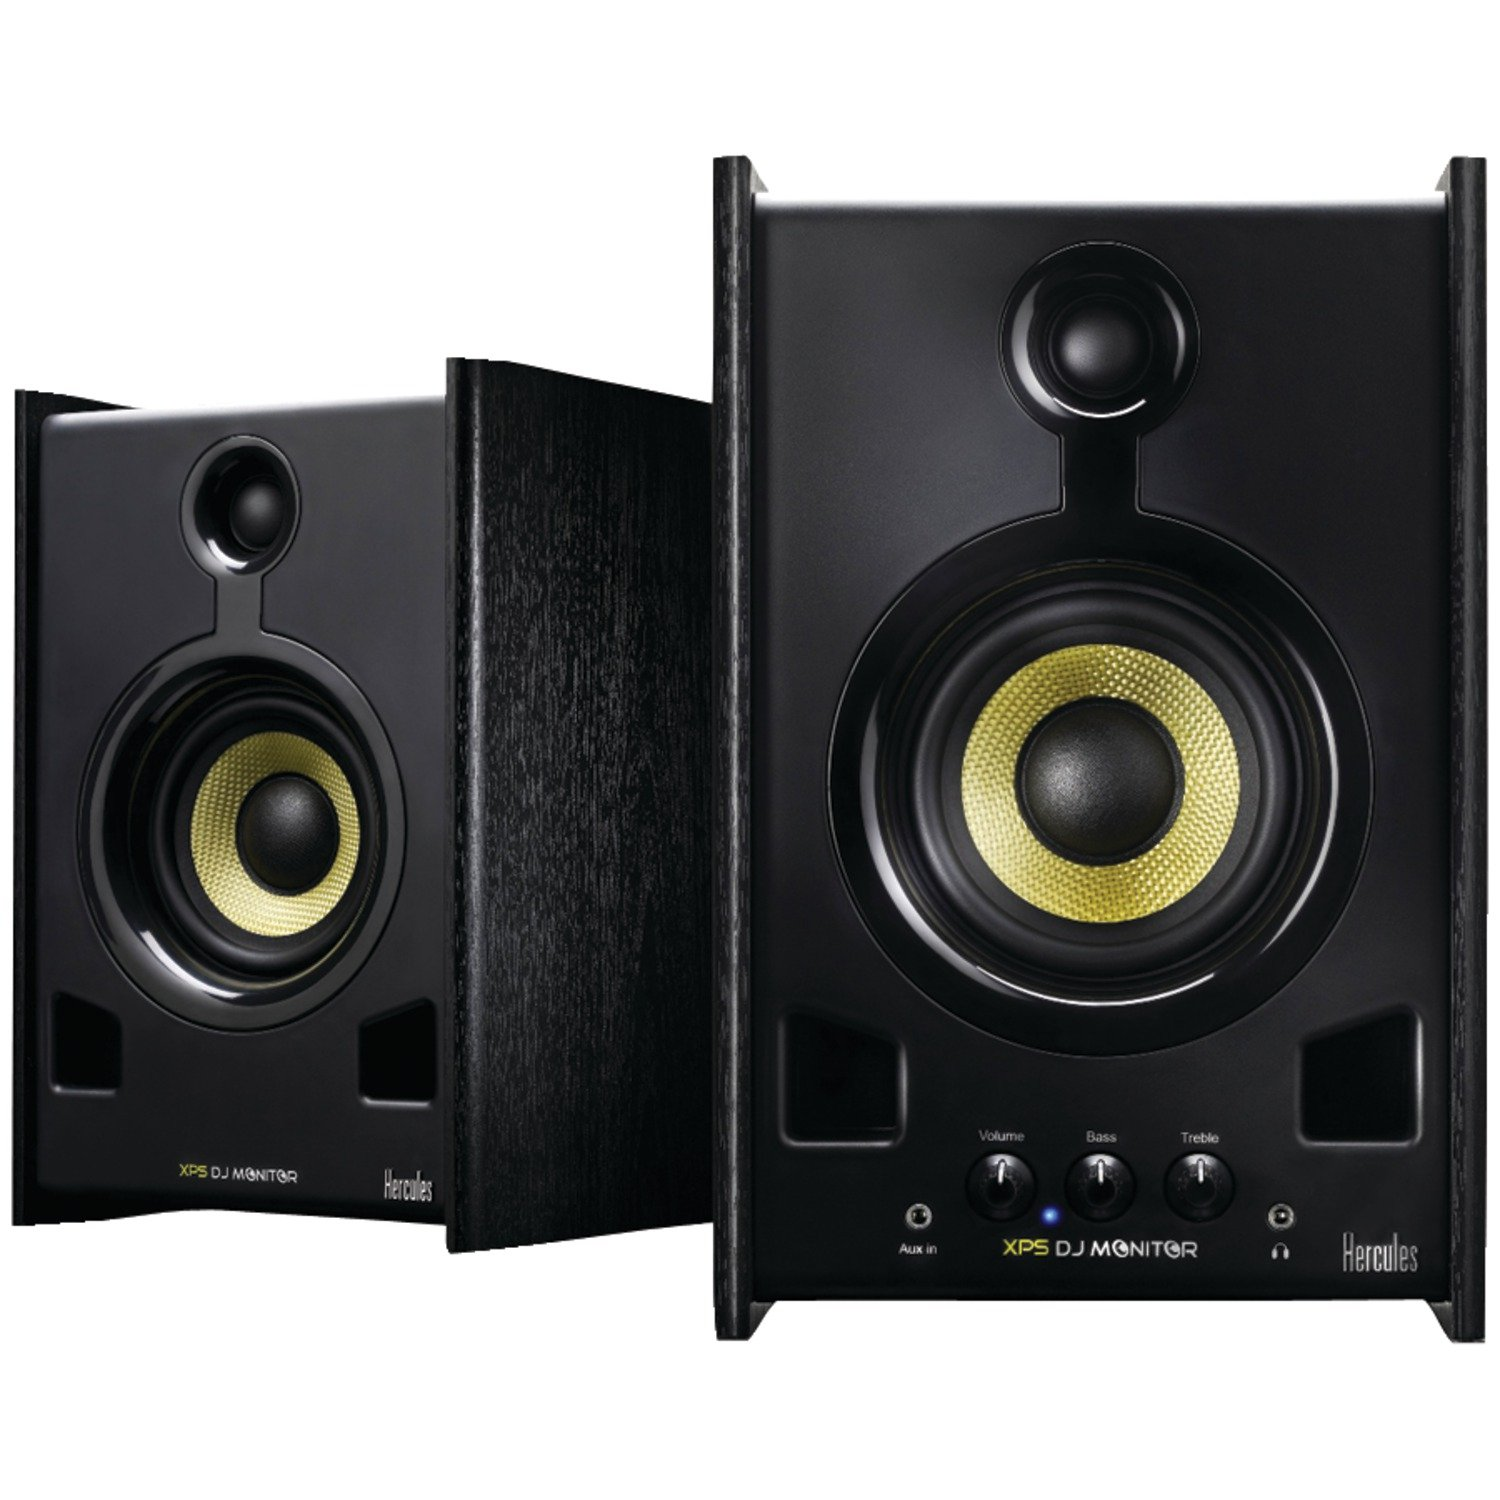 Hercules DJ XPS 2.0 80 DJ Monitor Speakers (Black)